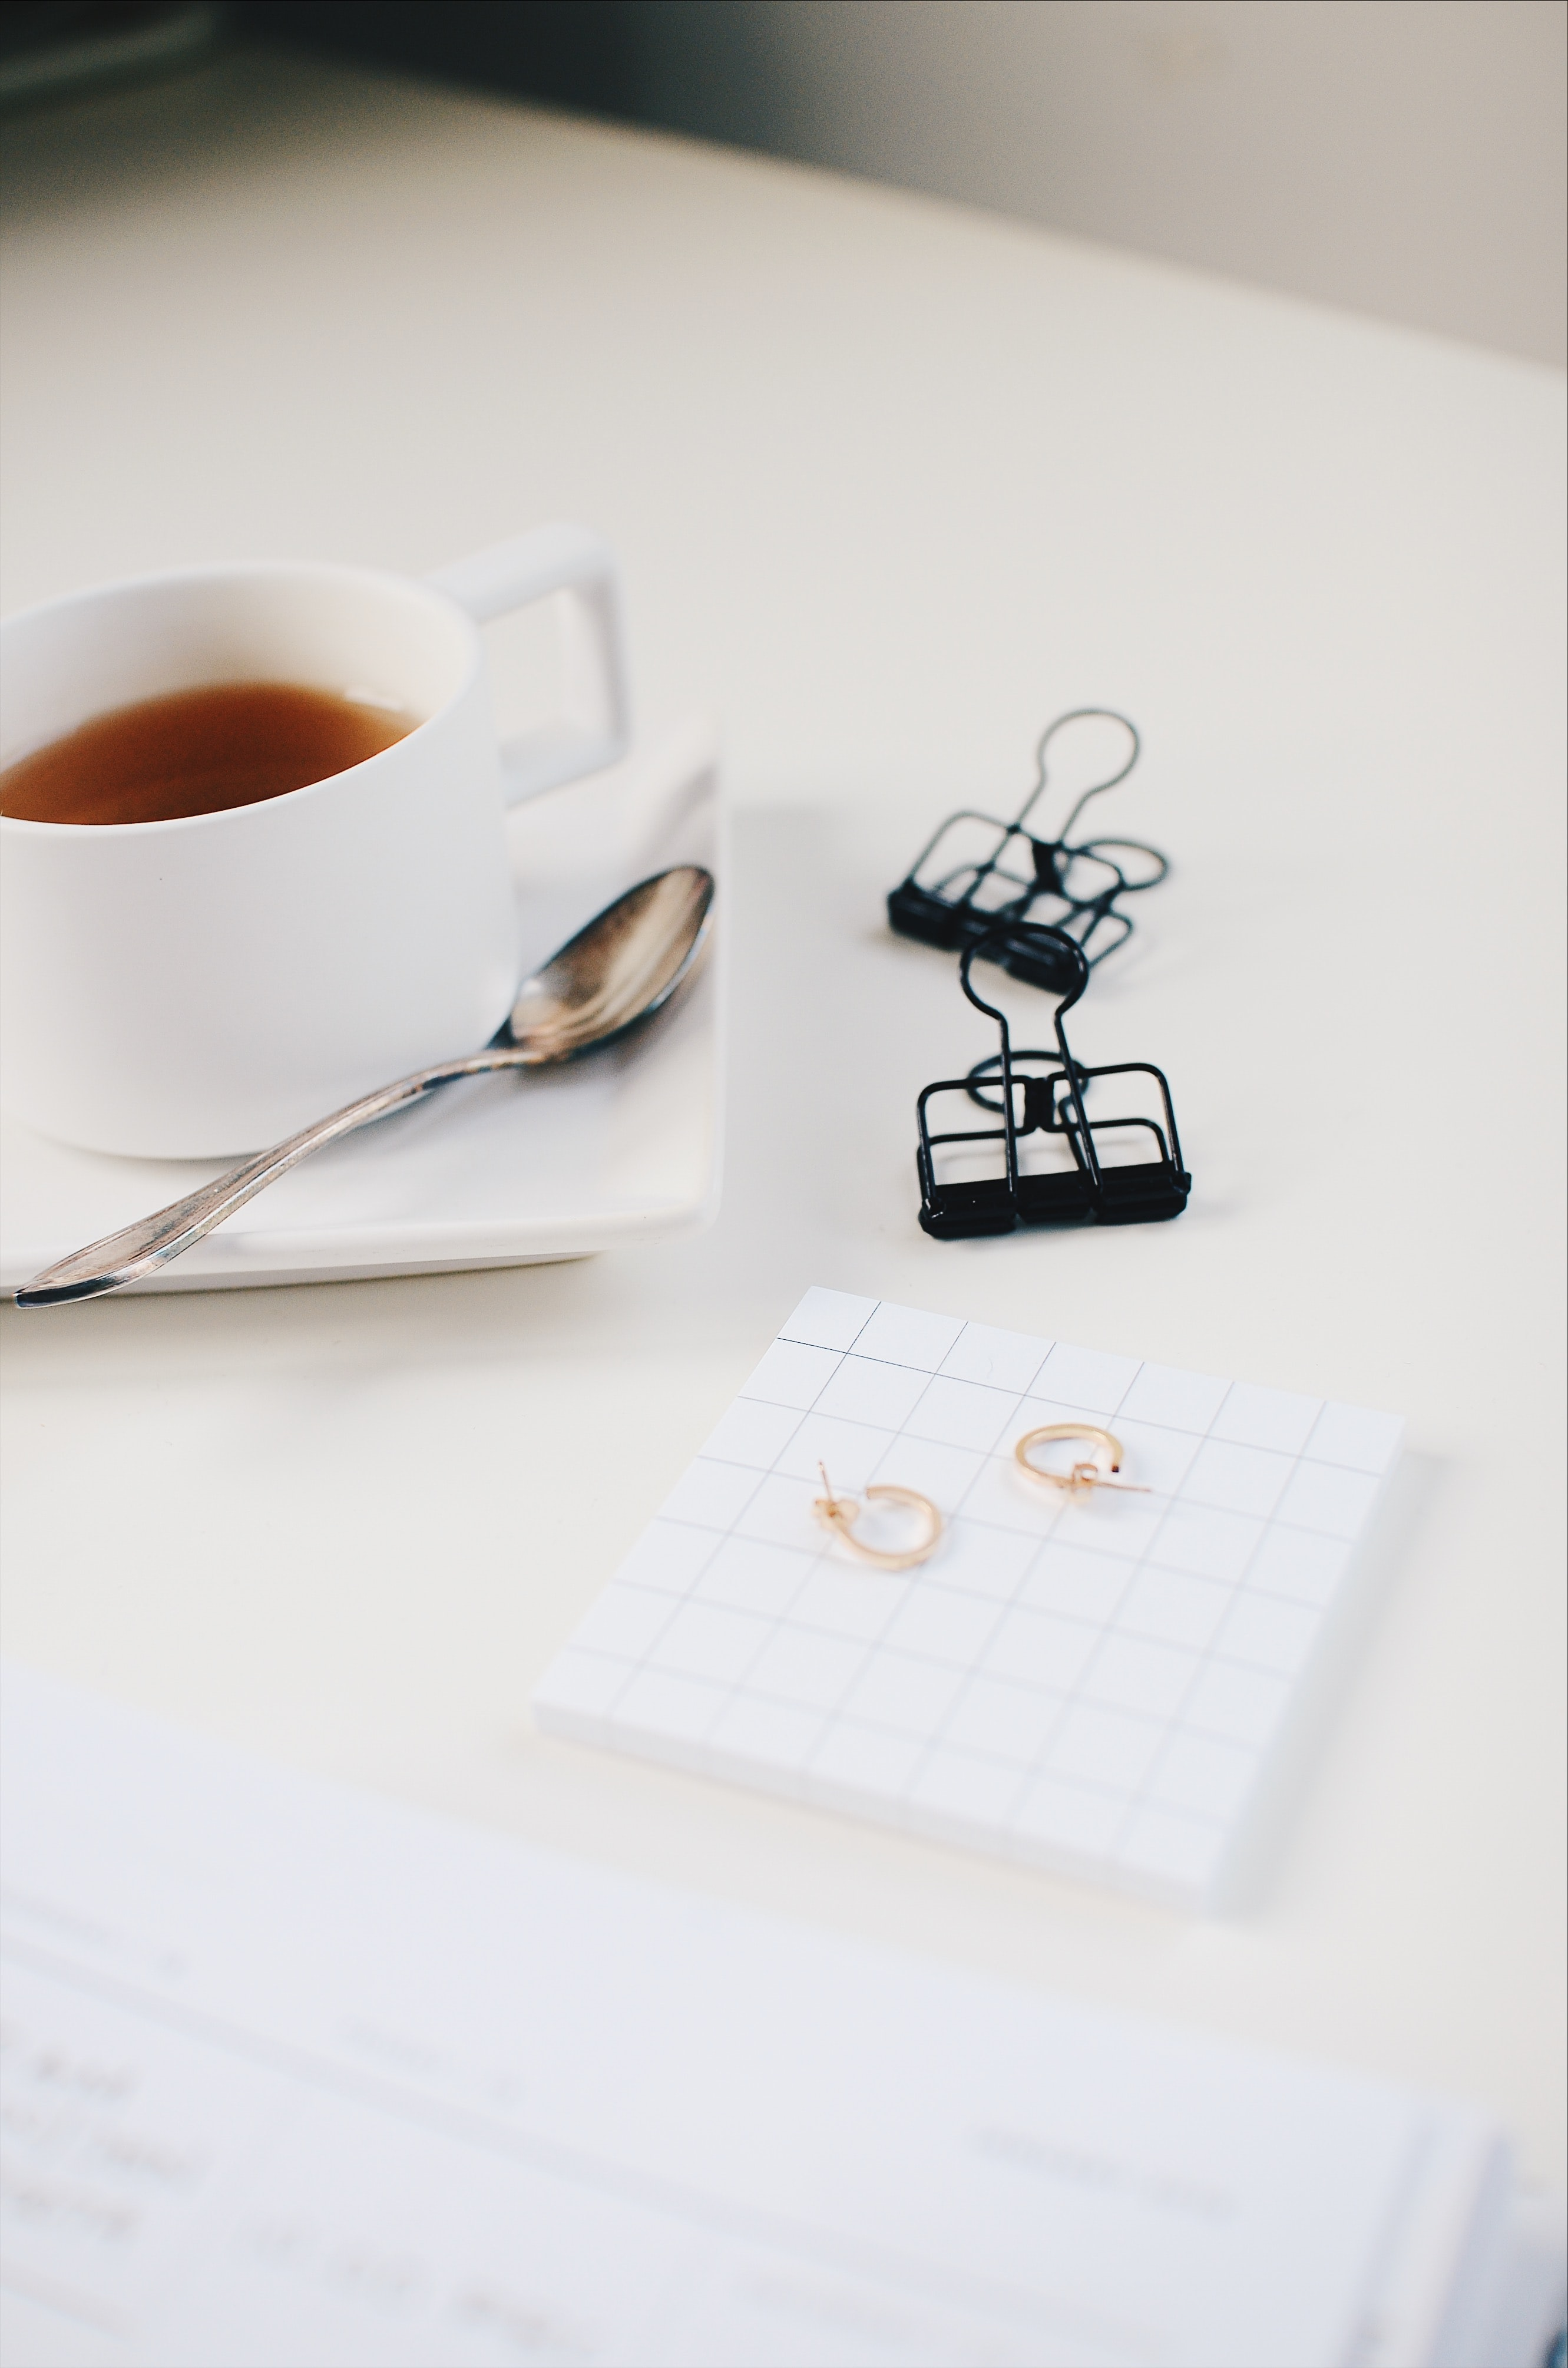 cup of tea with two black paper clips